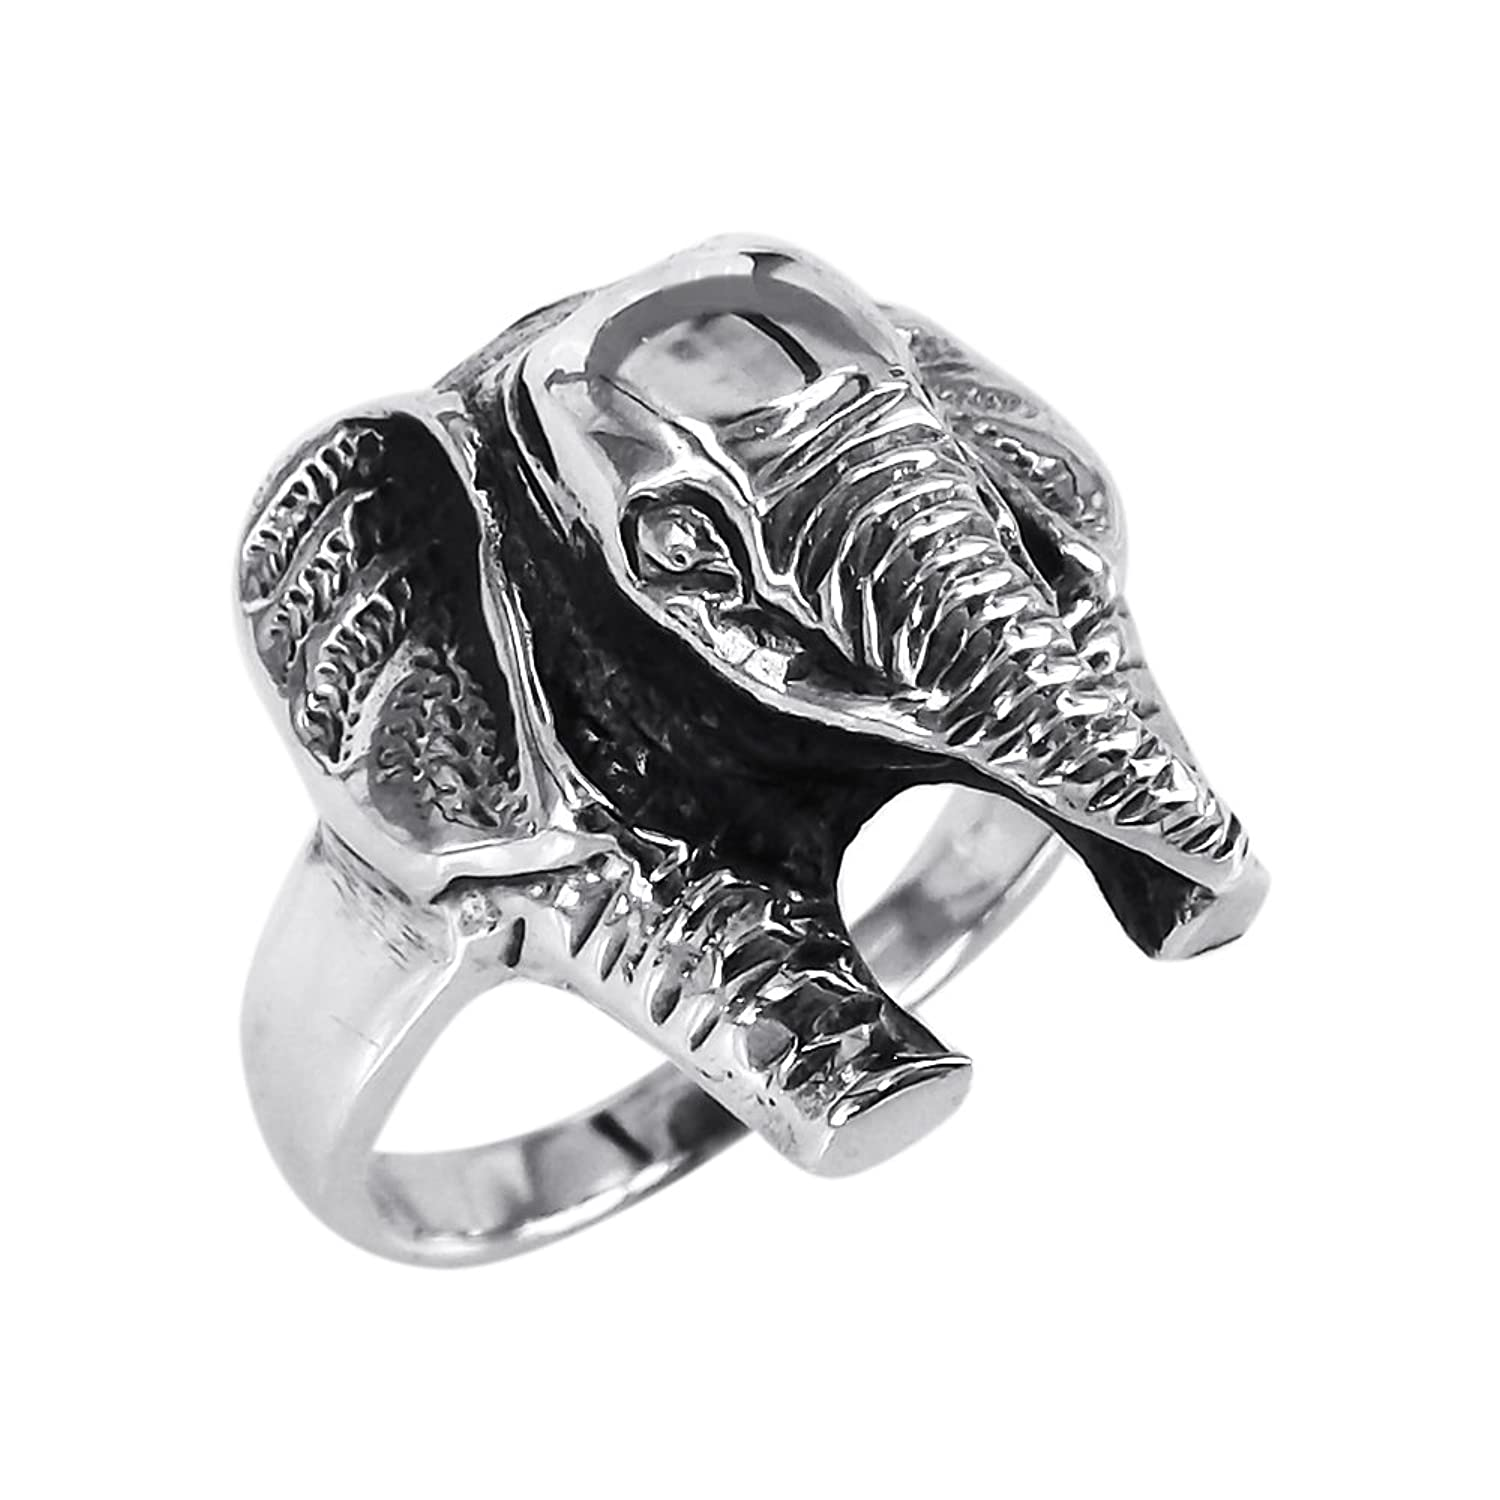 item rings for punk jewelry romantic engagement in animal from elephant drop copper women s anillos danze shipping creative mujer men